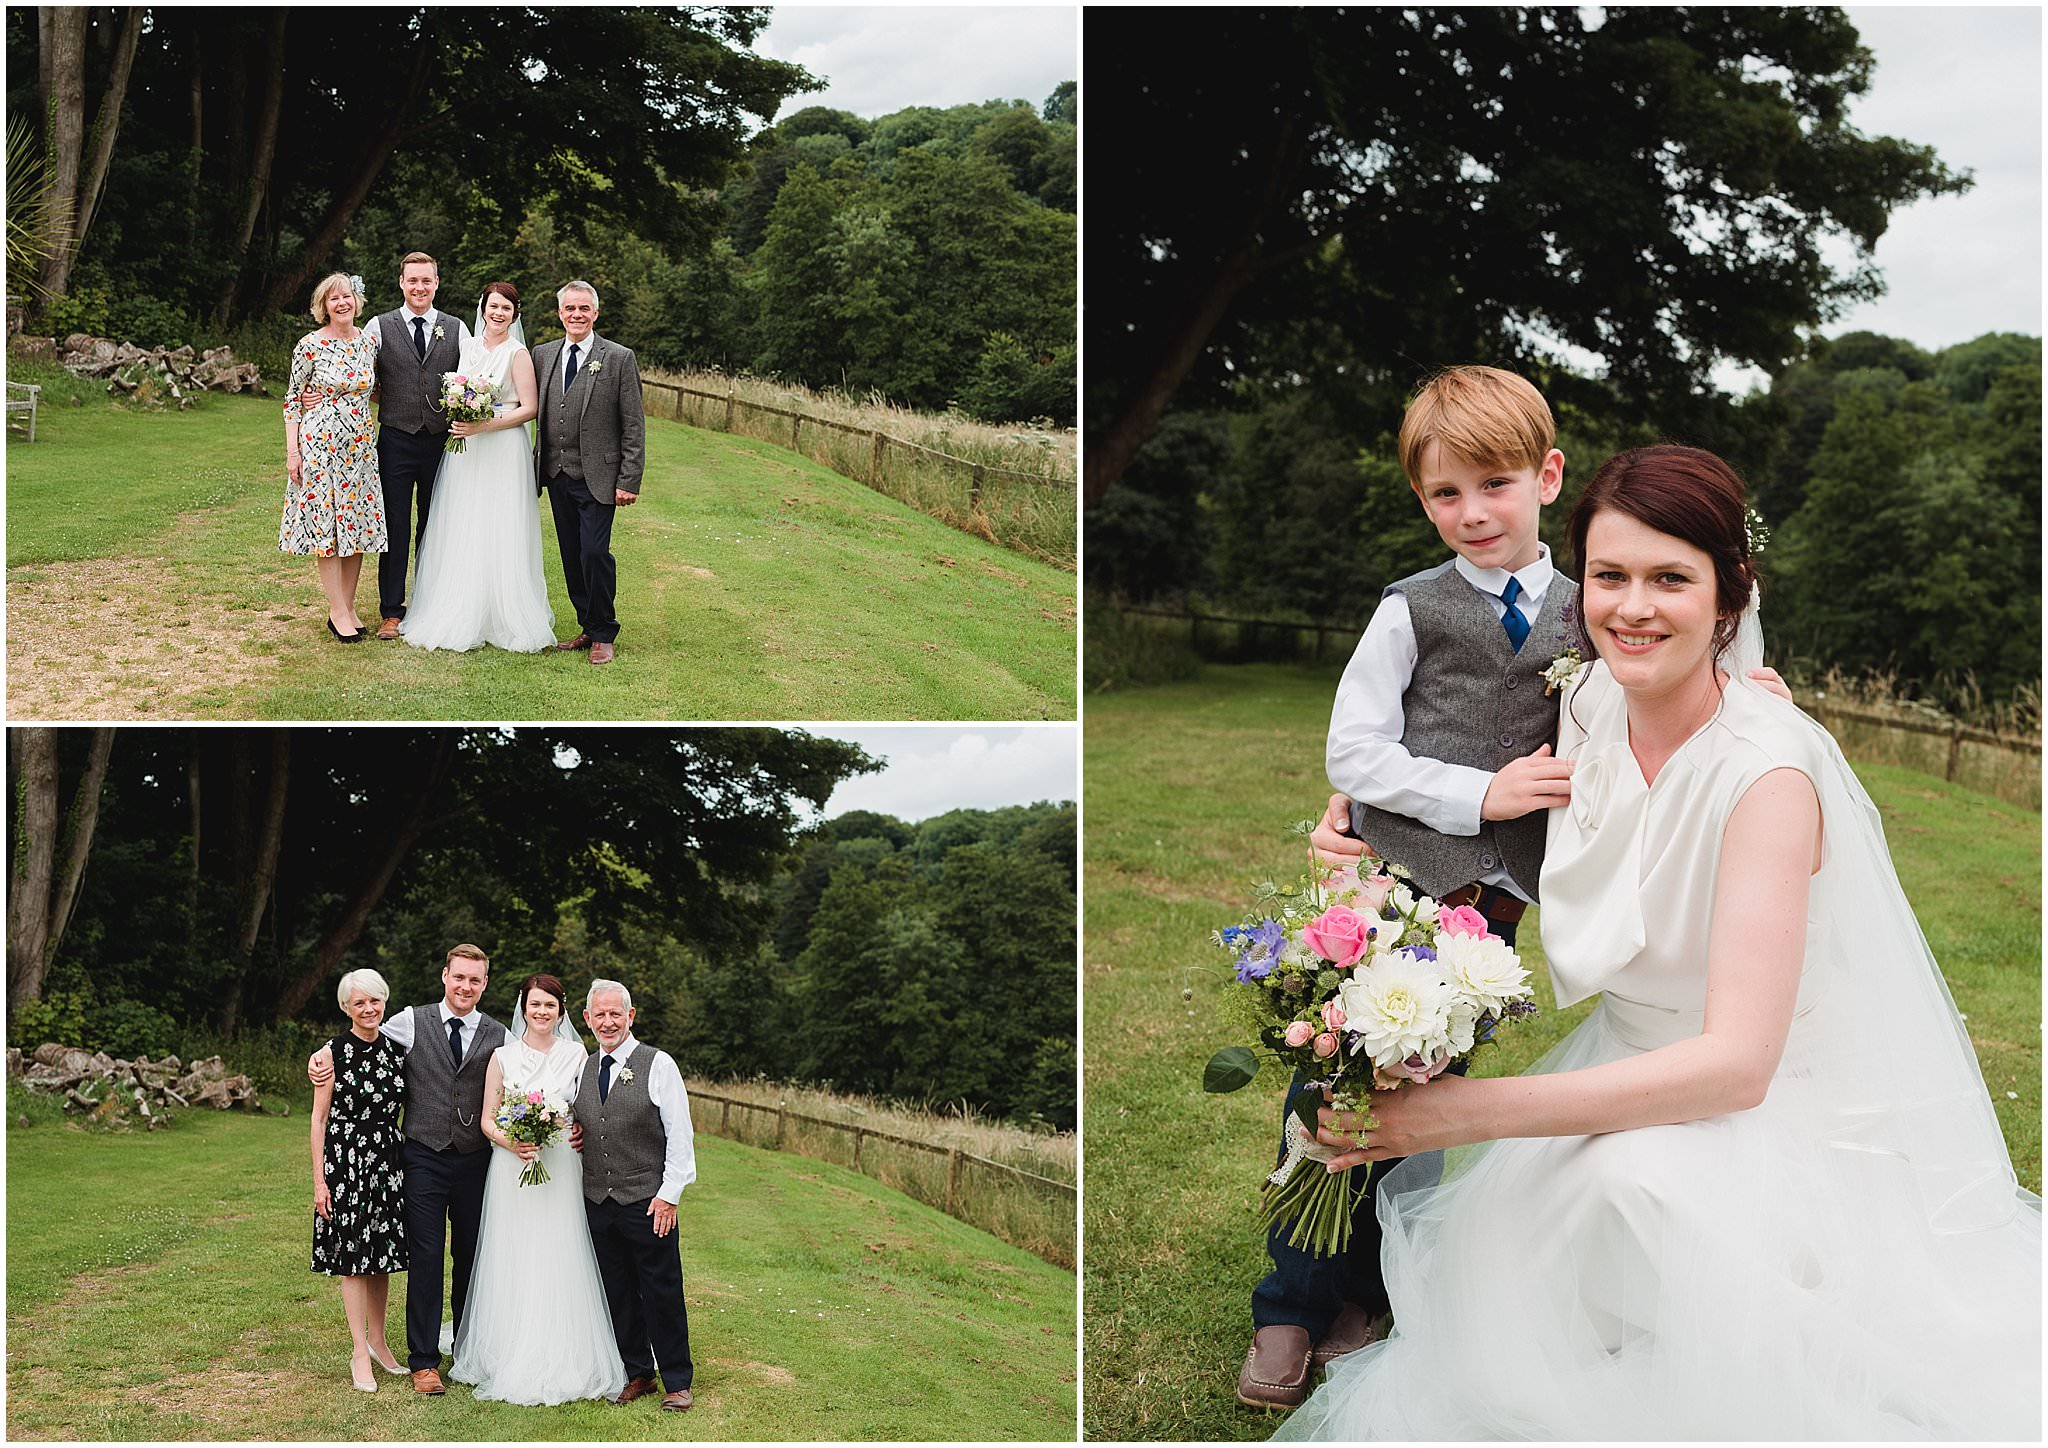 fay & tim wedding at ashley wood farm_0474